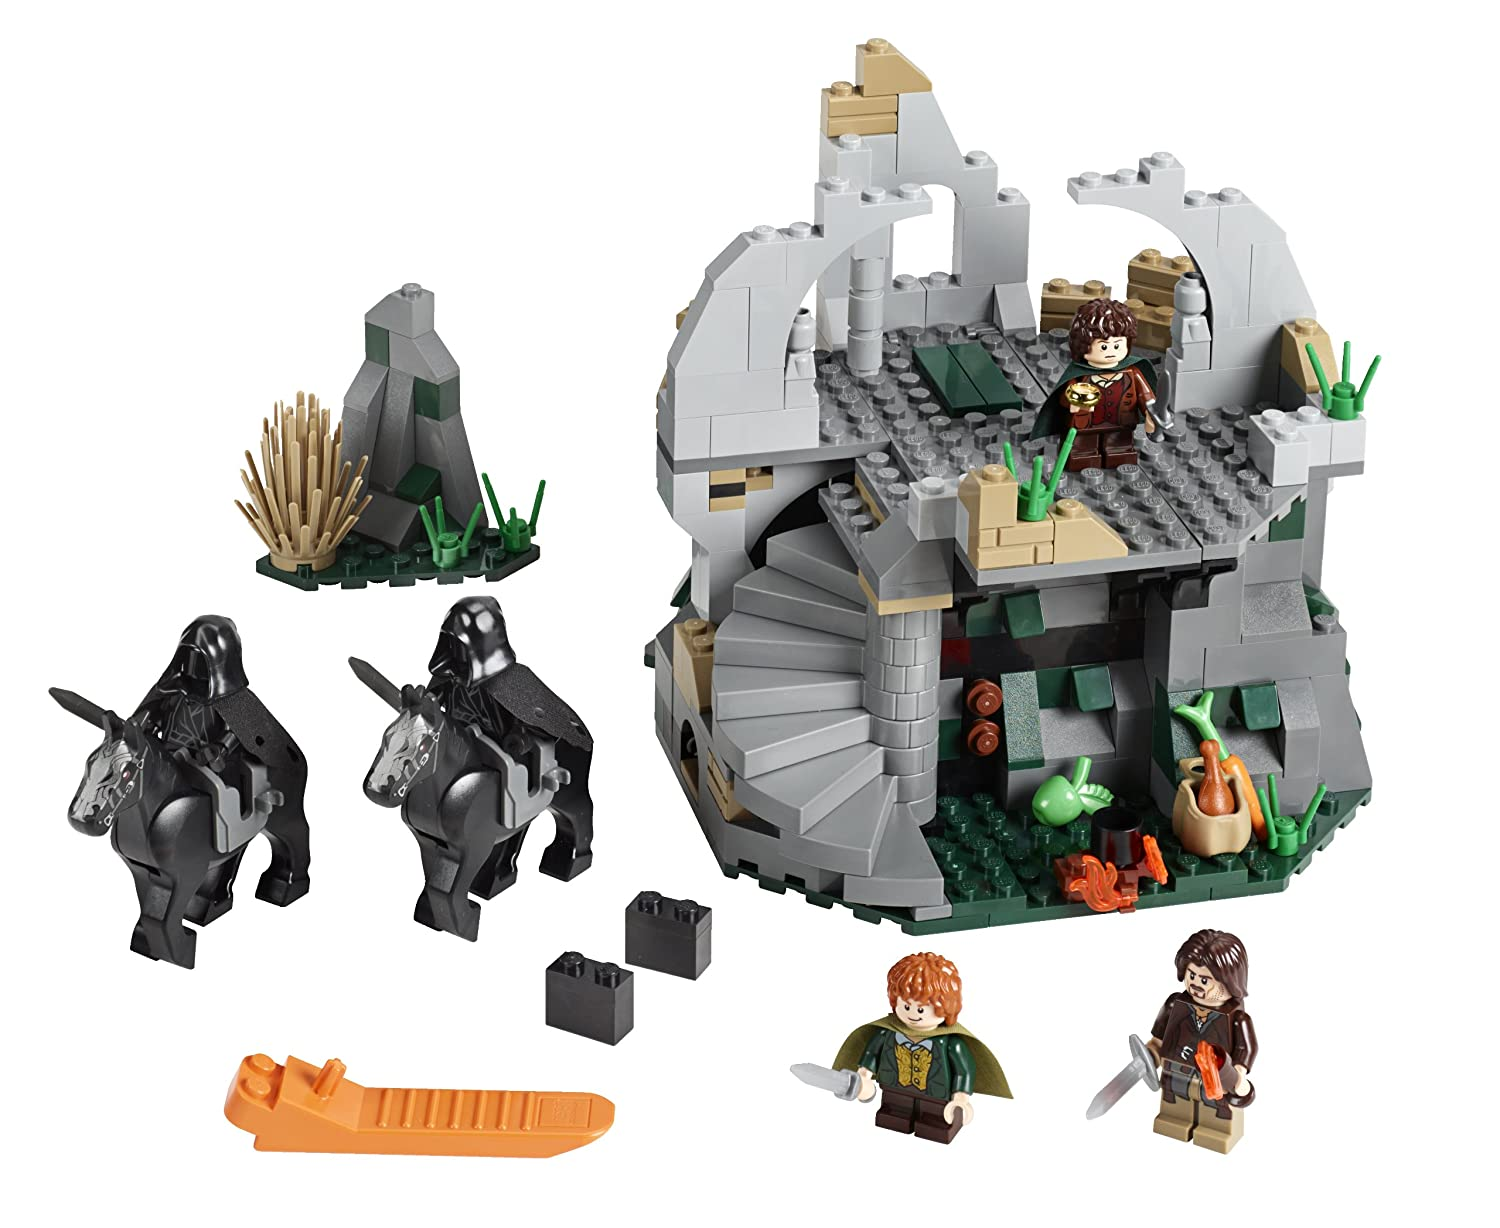 Lego Lotr 9472 Attack On Weathertop Toys Games The Lord Of Rings Battle At Black Gate 79007